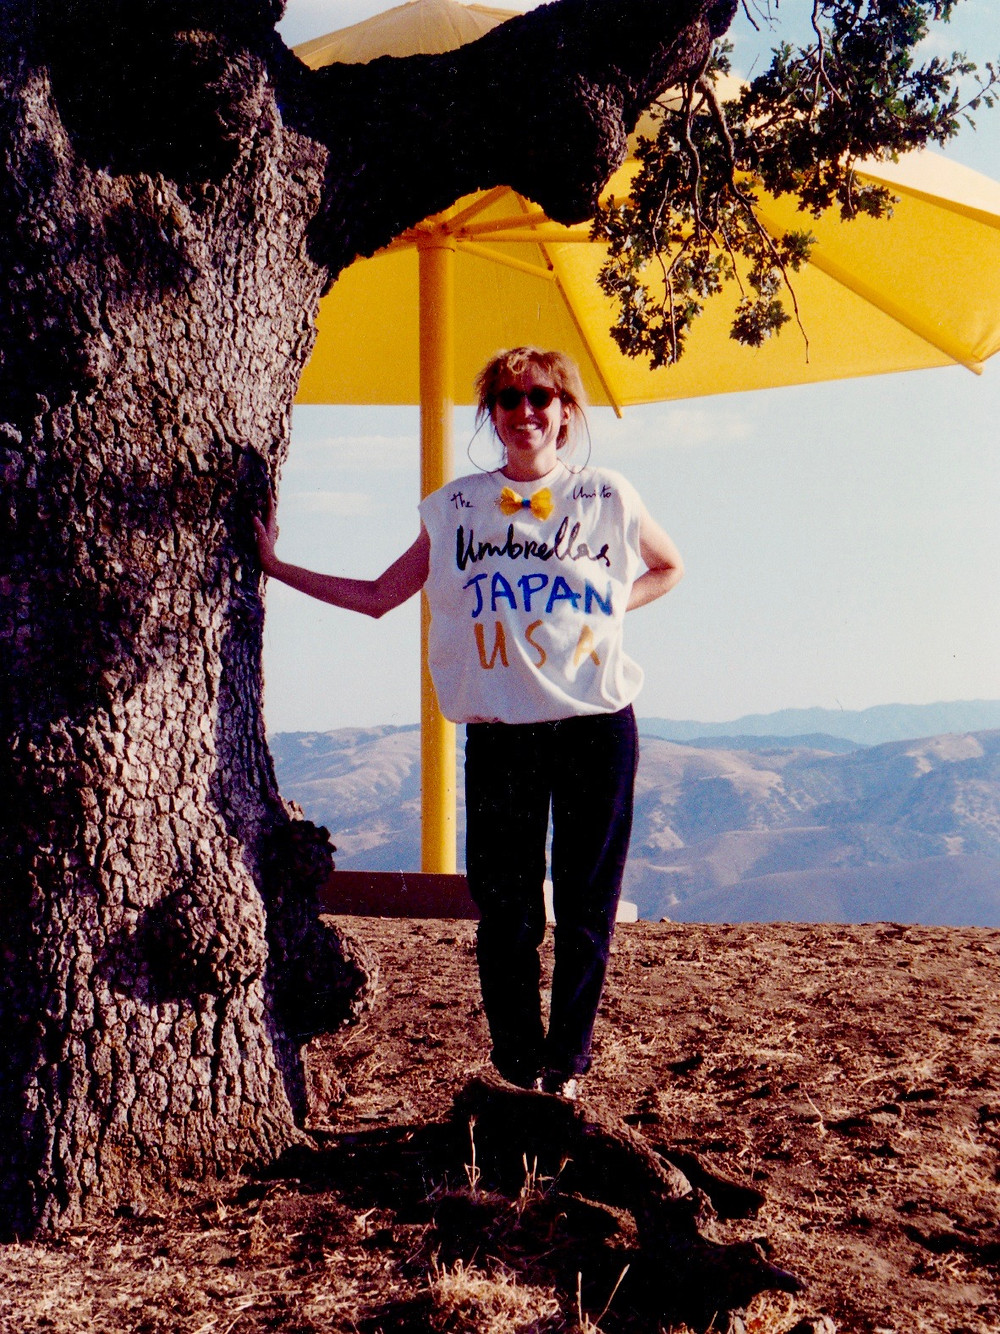 "Concurrently with the California umbrellas, Christo installed 1,340 blue umbrellas in Japan. Hence, the ""JAPAN, USA"" inscription on the t-shirt."